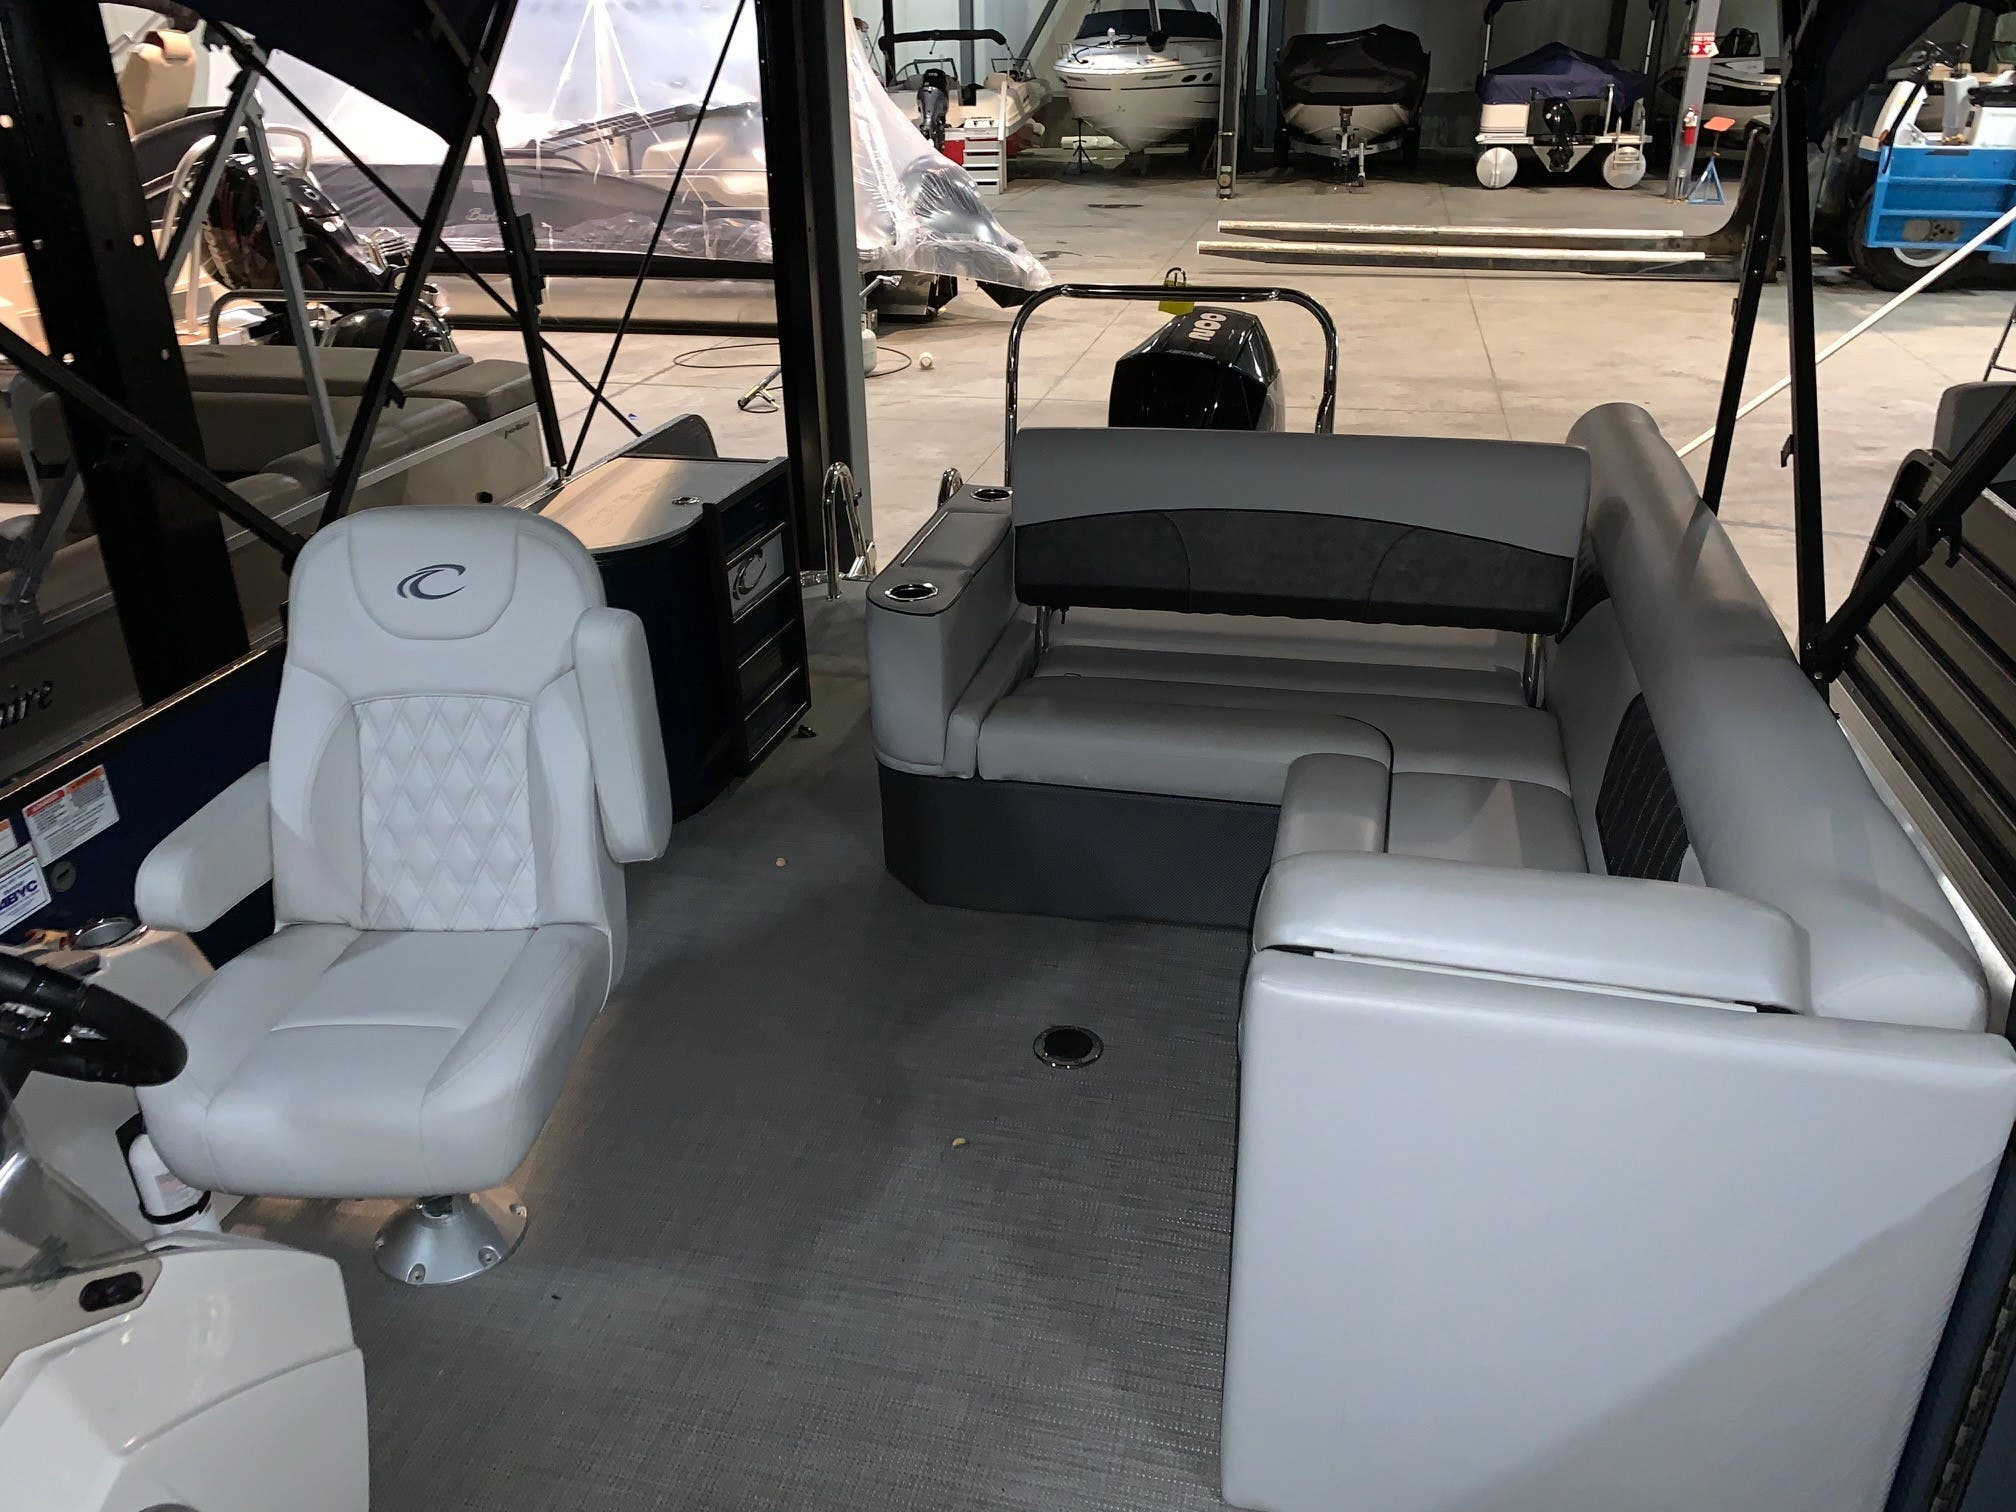 2019 Crest boat for sale, model of the boat is II 220 SLS & Image # 4 of 9